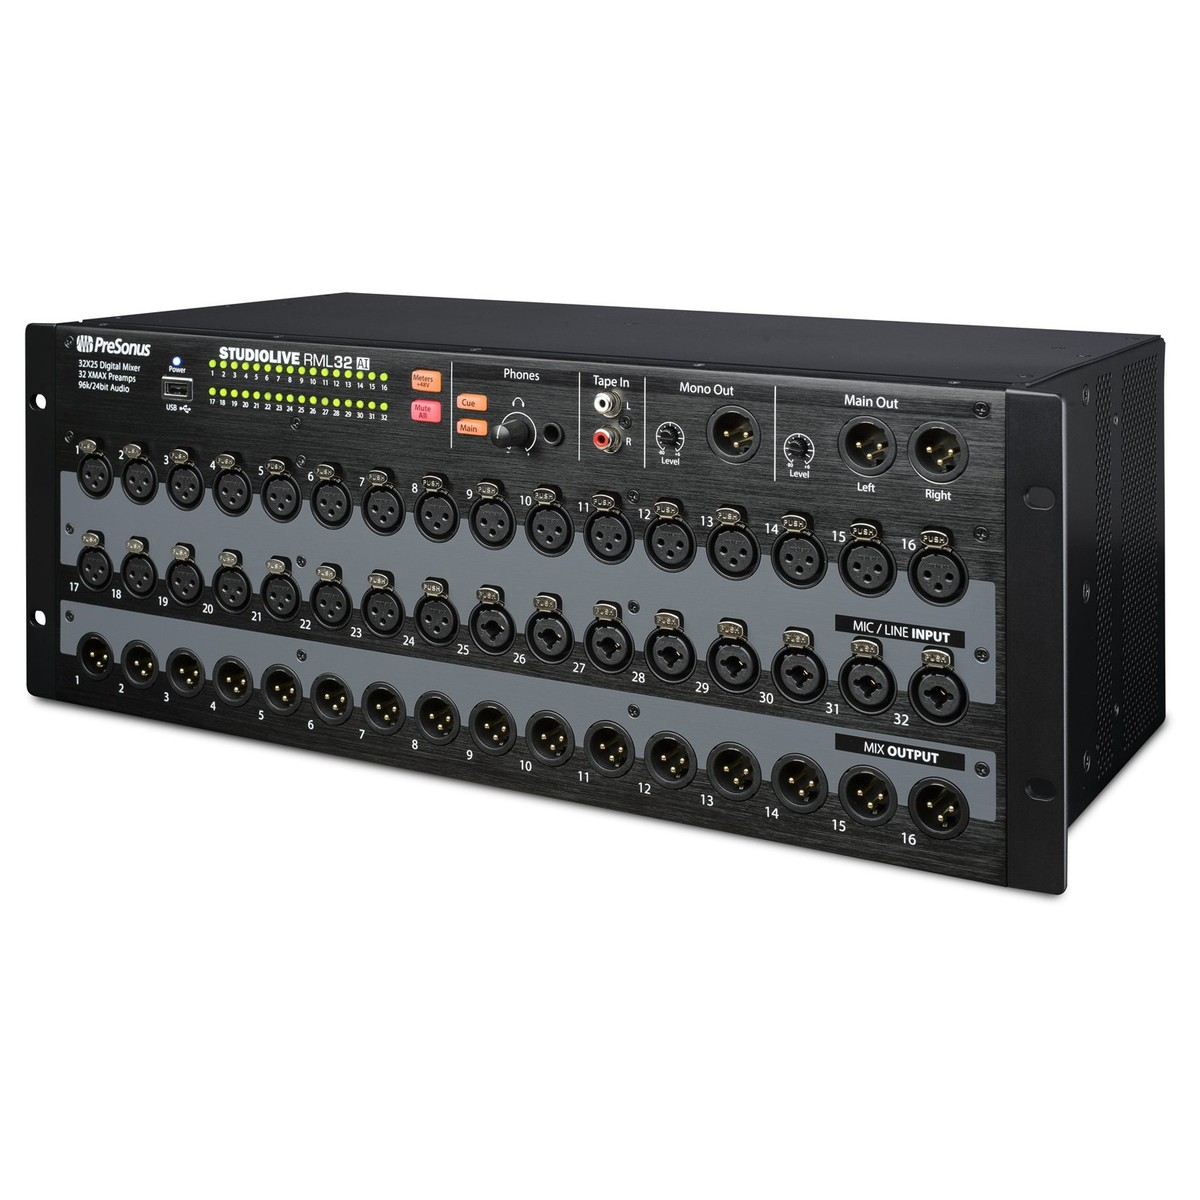 presonus studiolive rml32ai rack mount digital mixer at